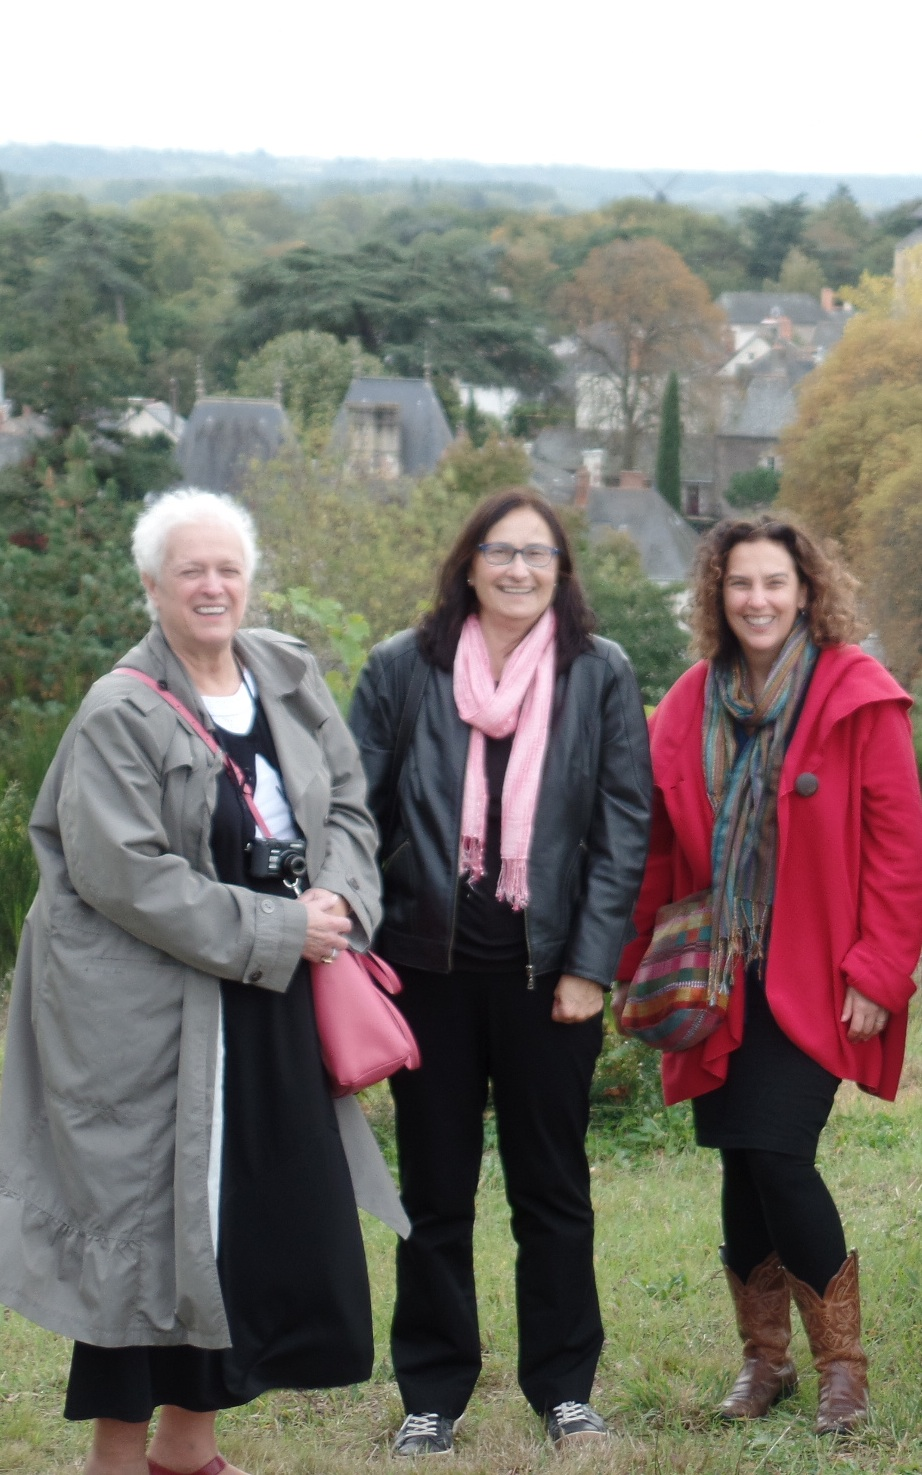 Savannieres Wine Day-October Writeaway in France-Ginny, Candace, Mimi.jpg